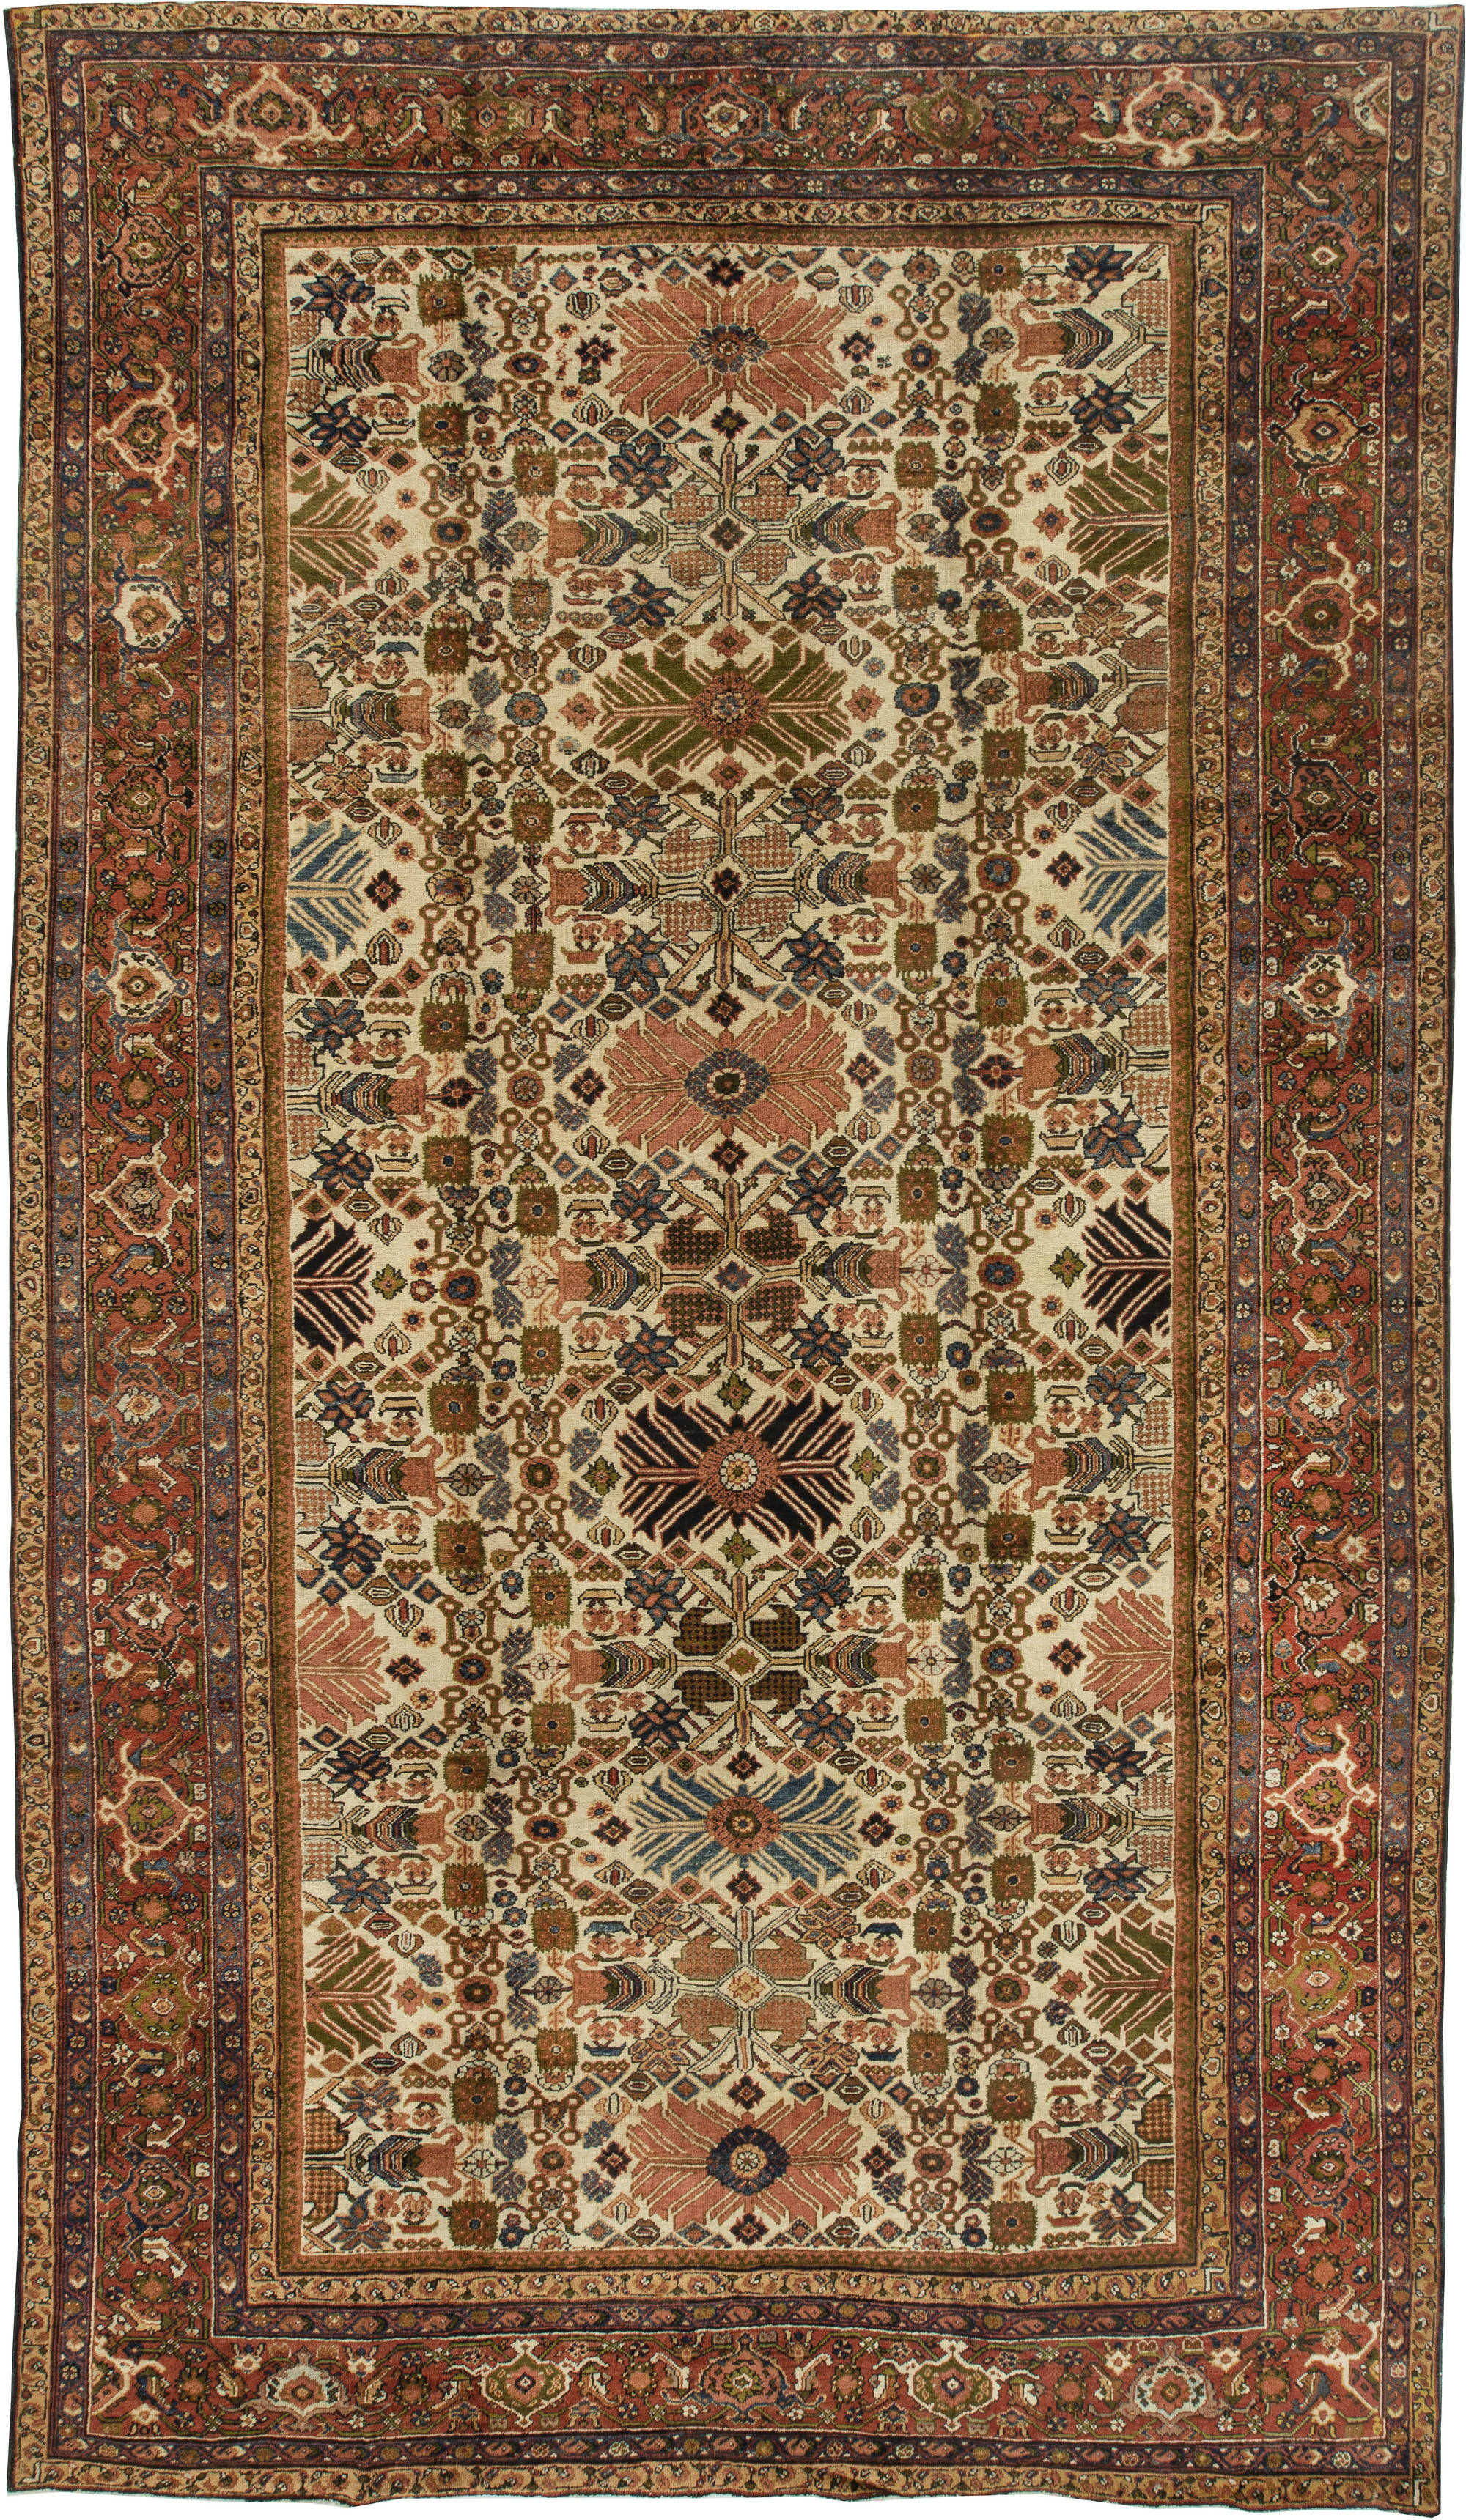 Rugs And Carpets Antique Persian Rugs Antique Oriental Rugs Persian